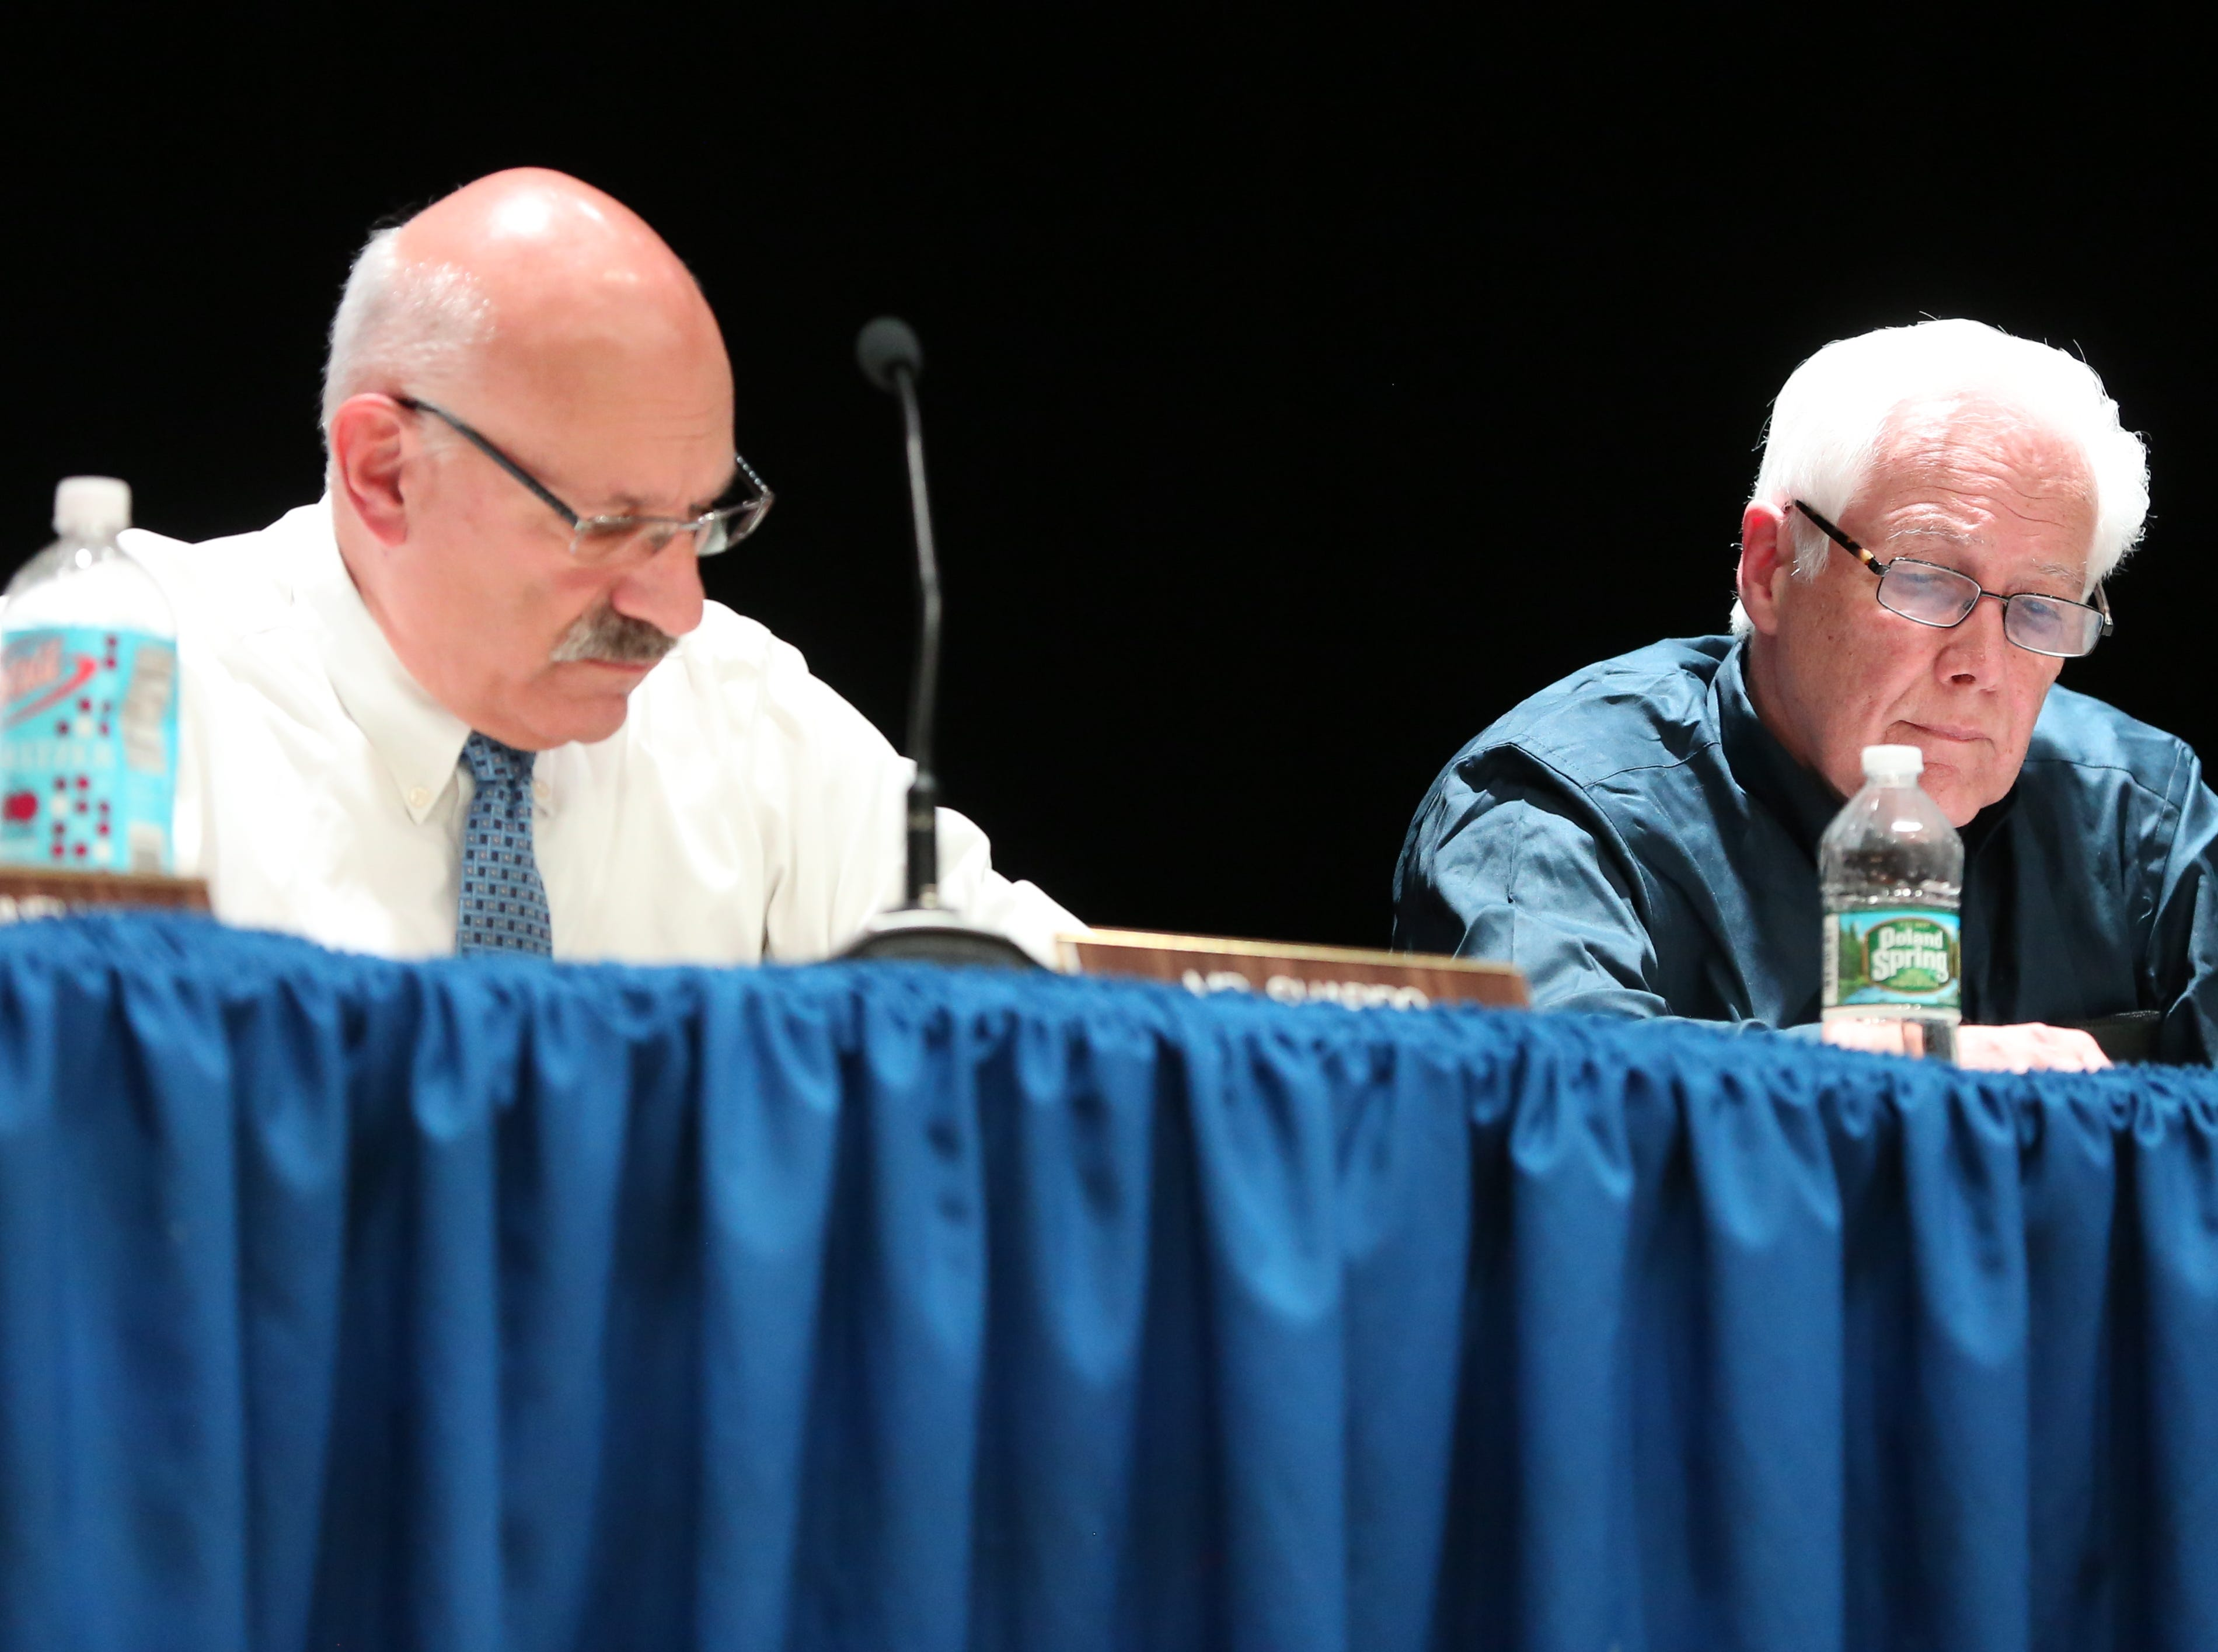 From left, Suffern Central School board members Paul Shapiro, and Donald Cairns make remarks during a special meeting to deal with backlash from the community over the board suspending veteran Superintendent Douglas Adams on undisclosed disciplinary charges at Suffern Middle School March 11, 2019.